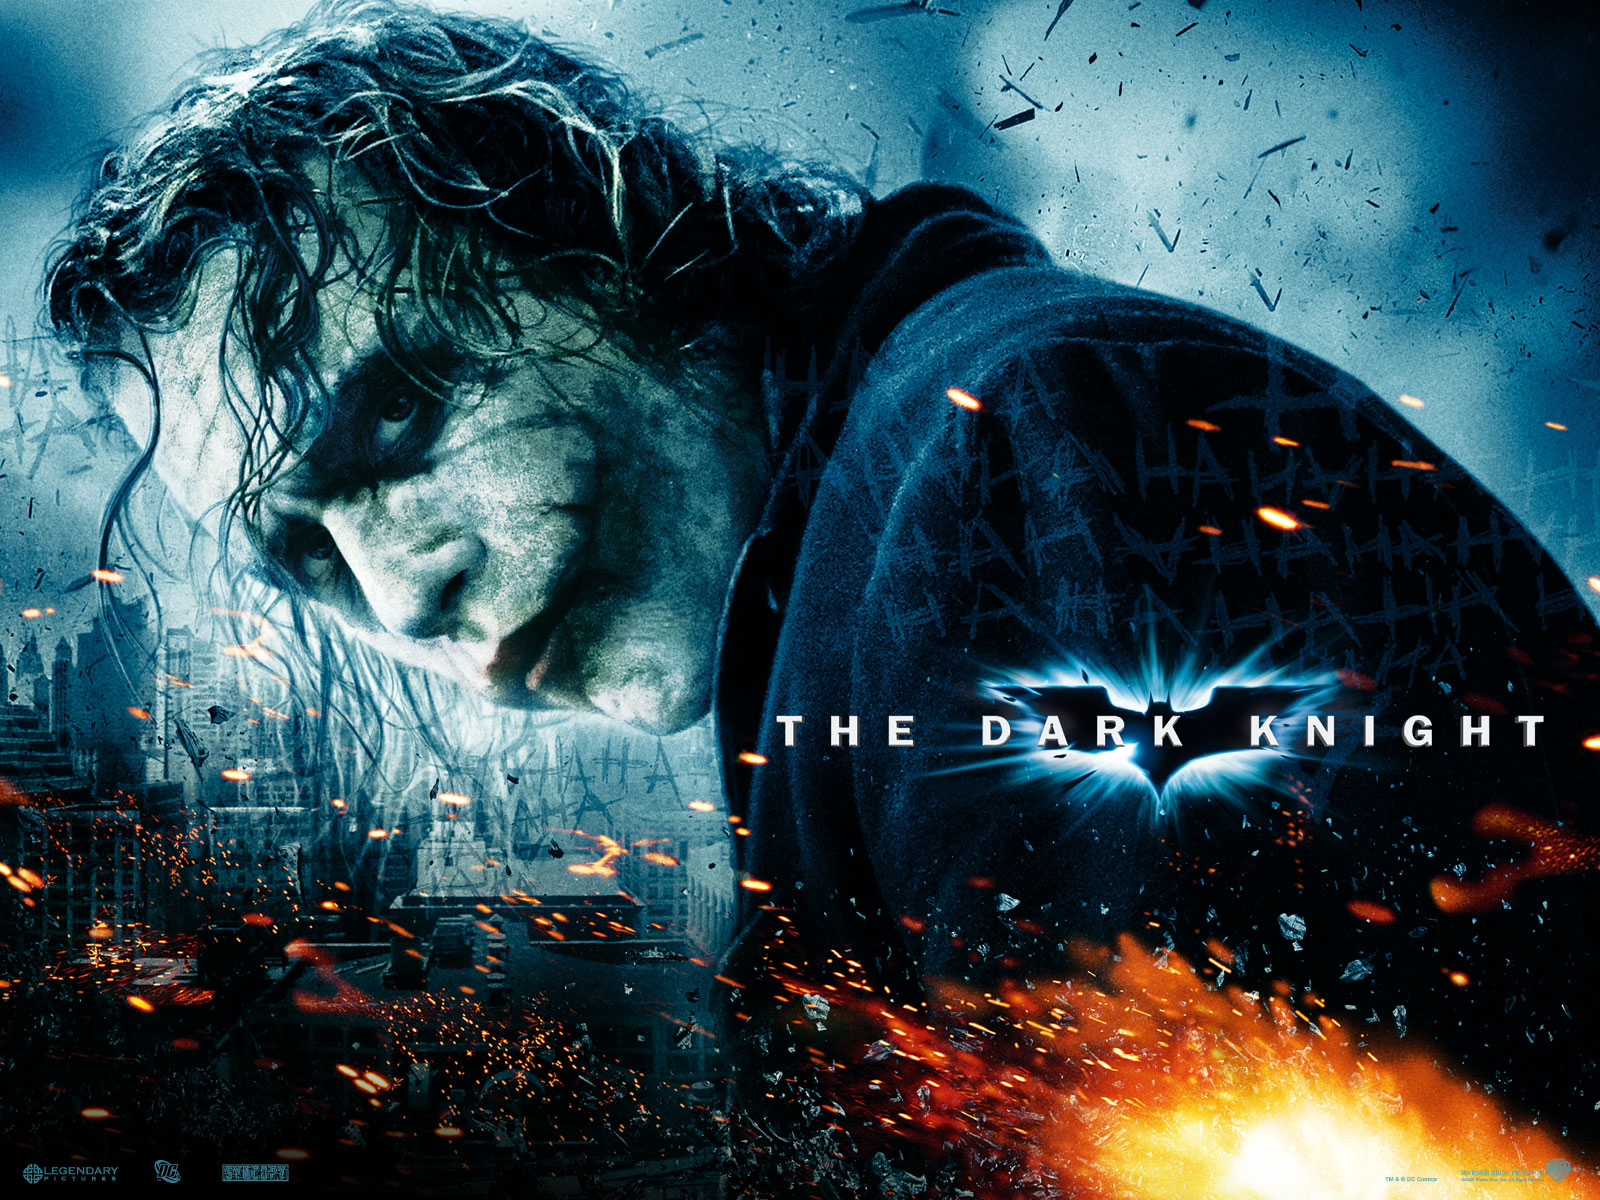 http://1.bp.blogspot.com/-PJKLx-t_DCs/T10mzsN8EII/AAAAAAAAERM/QYx2KRETeQY/s1600/The+Dark+Knight+movie+posters,movie+wallpaper,films,1.jpg